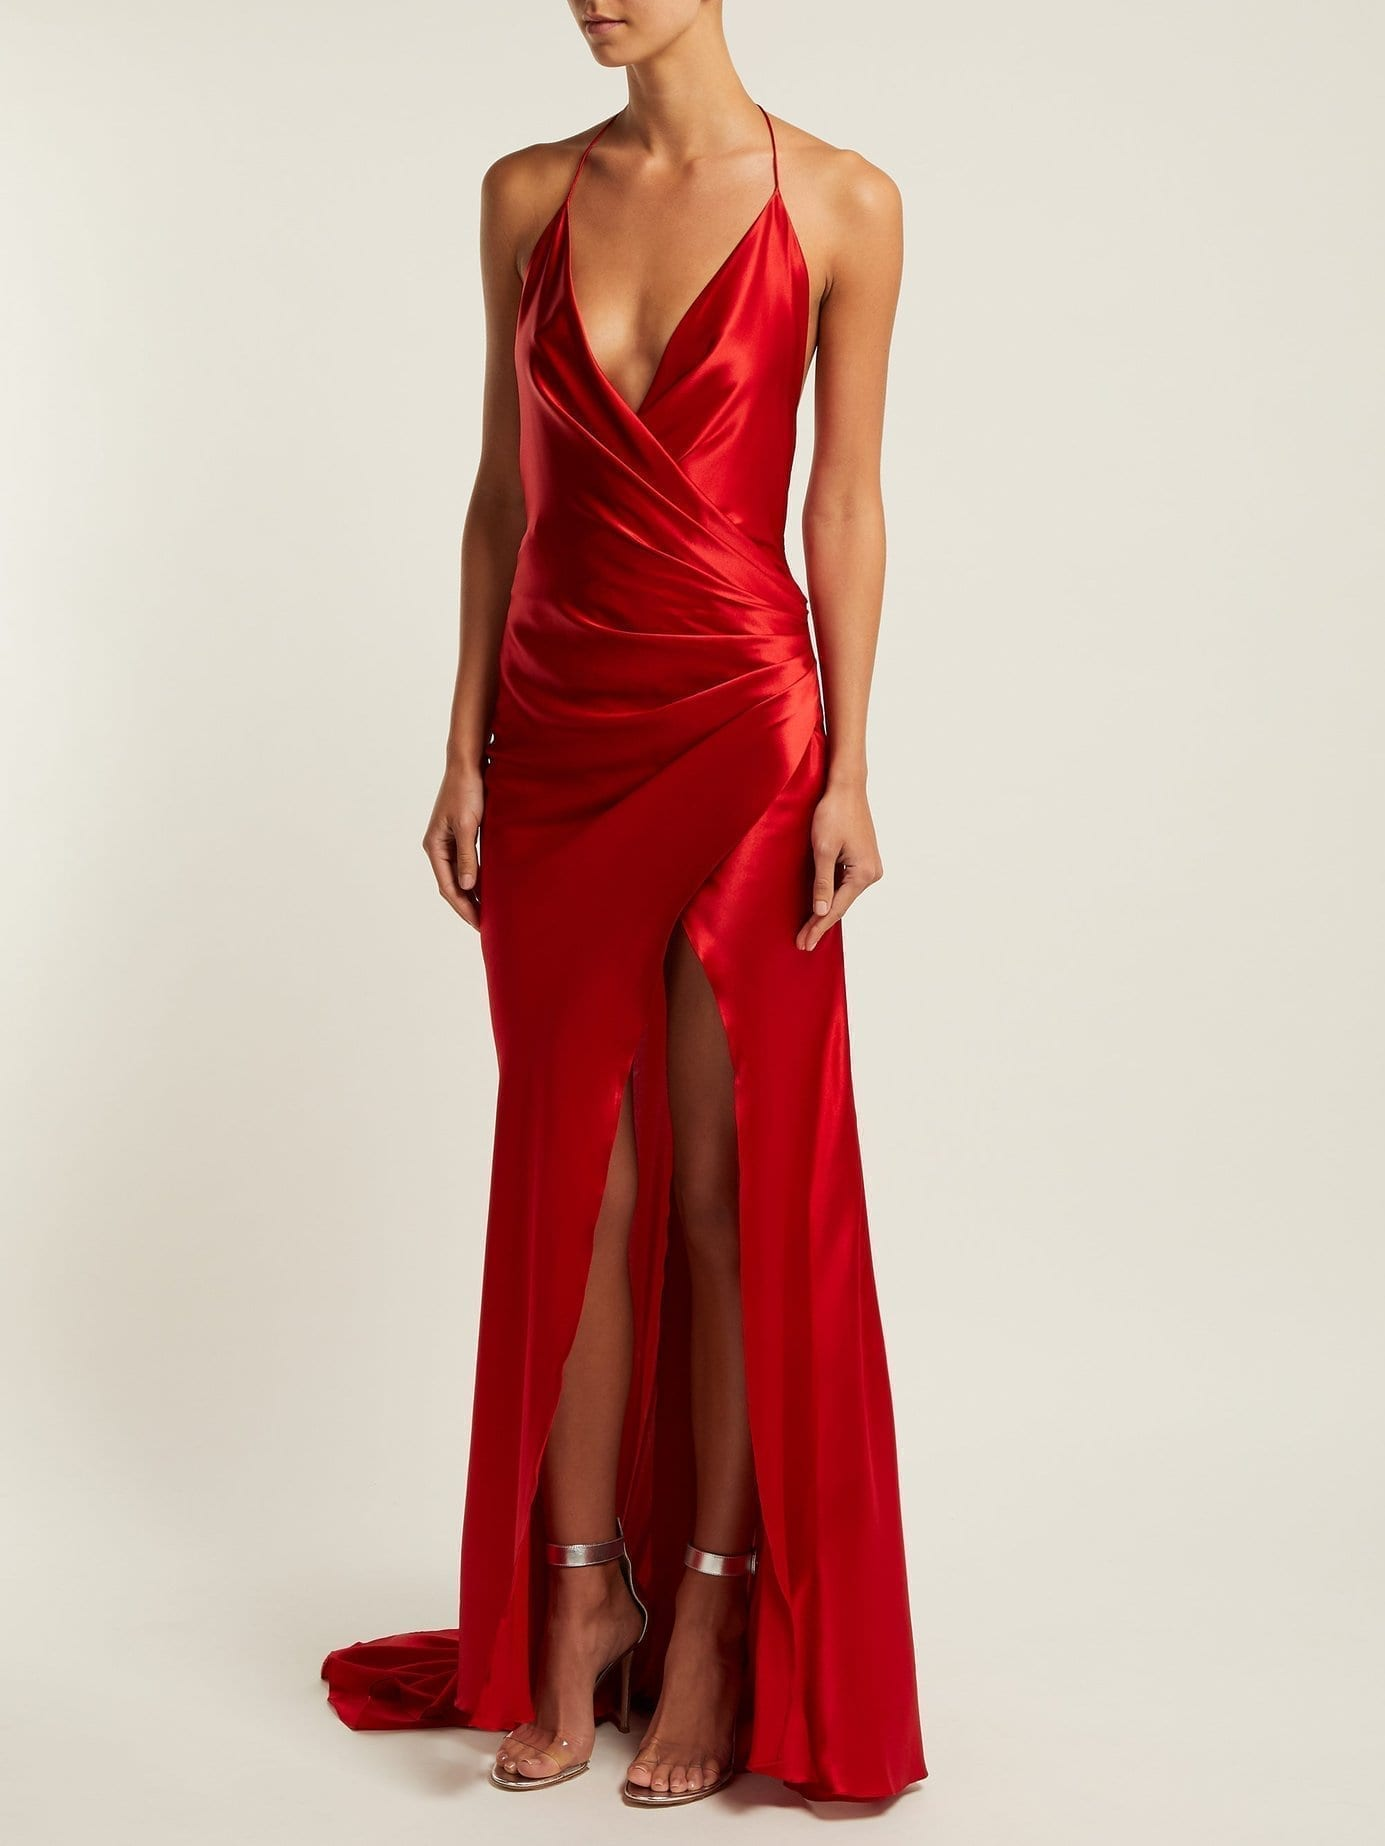 ADRIANA IGLESIAS Scarface Draped Silk Blend Red Gown